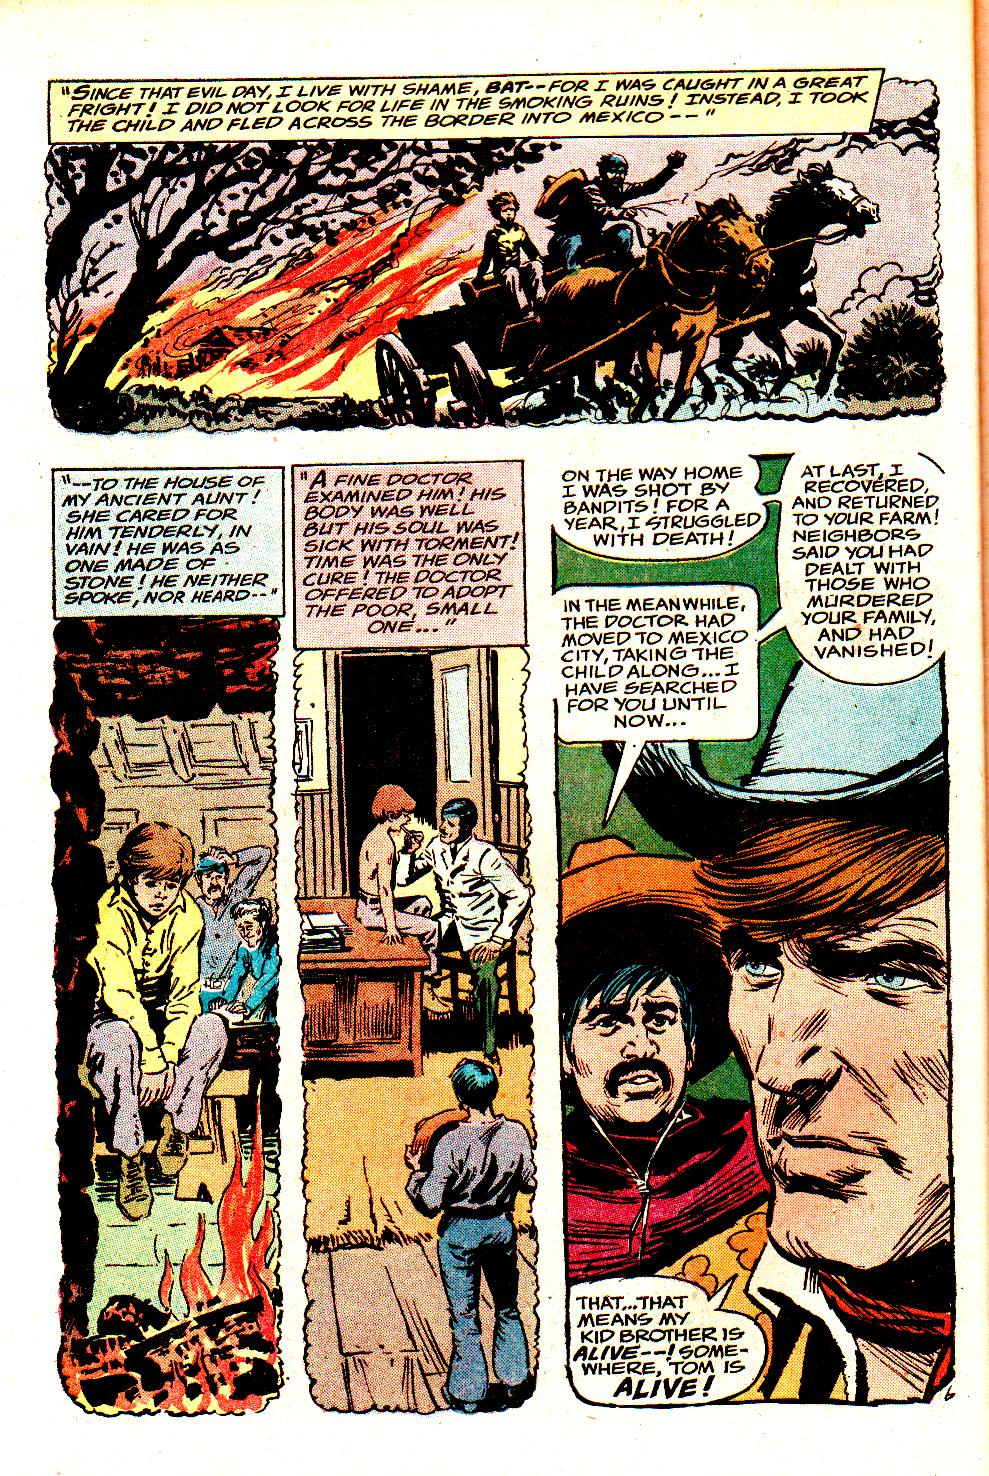 Read online All-Star Western (1970) comic -  Issue #11 - 42